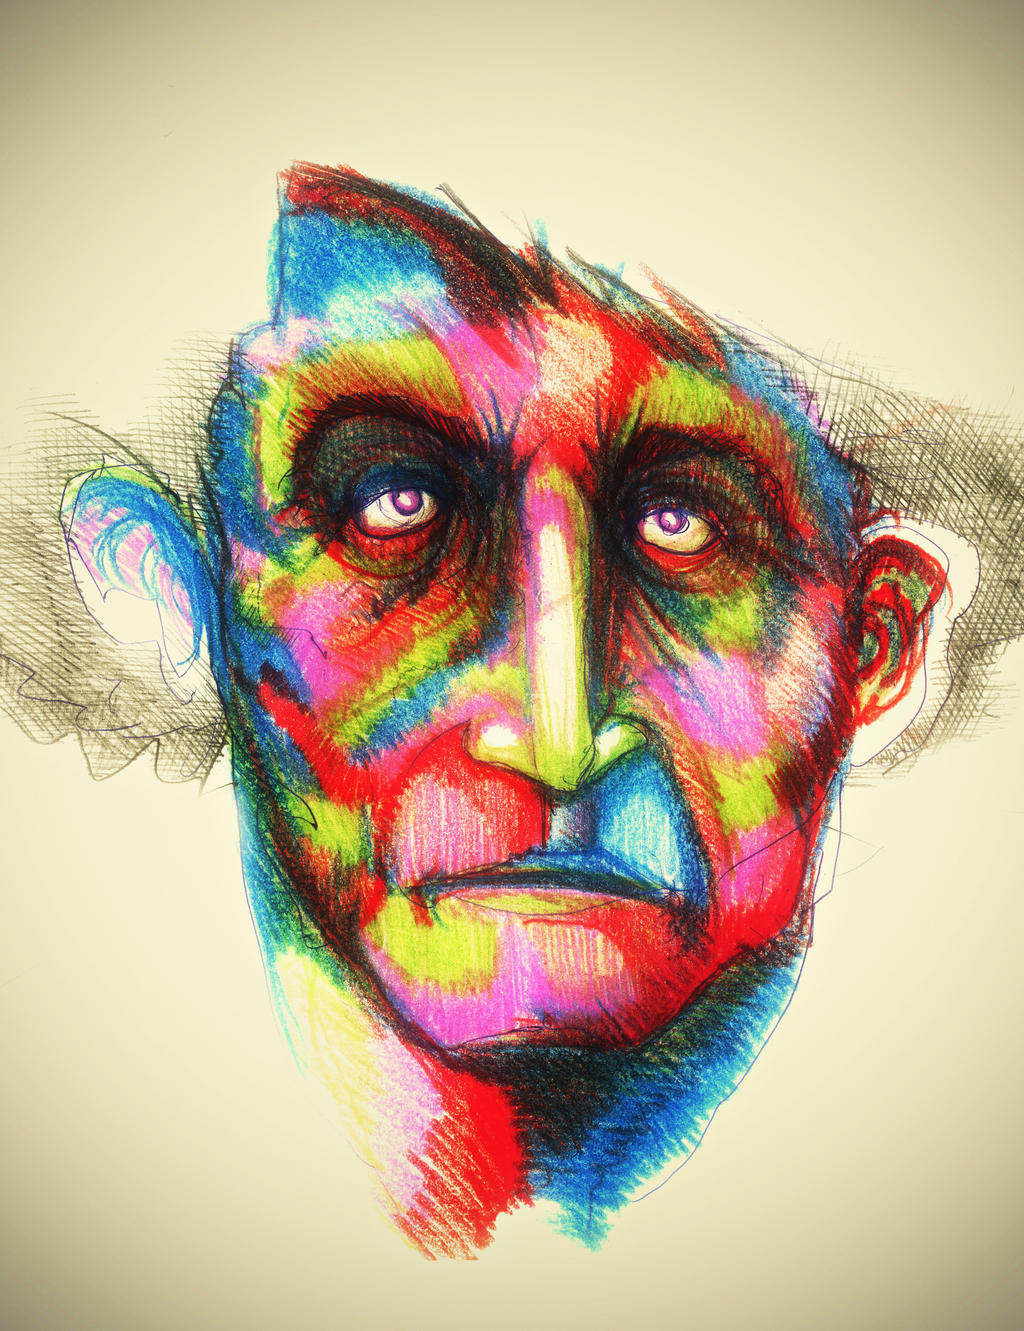 trippy art drawings faces wwwimgkidcom the image kid